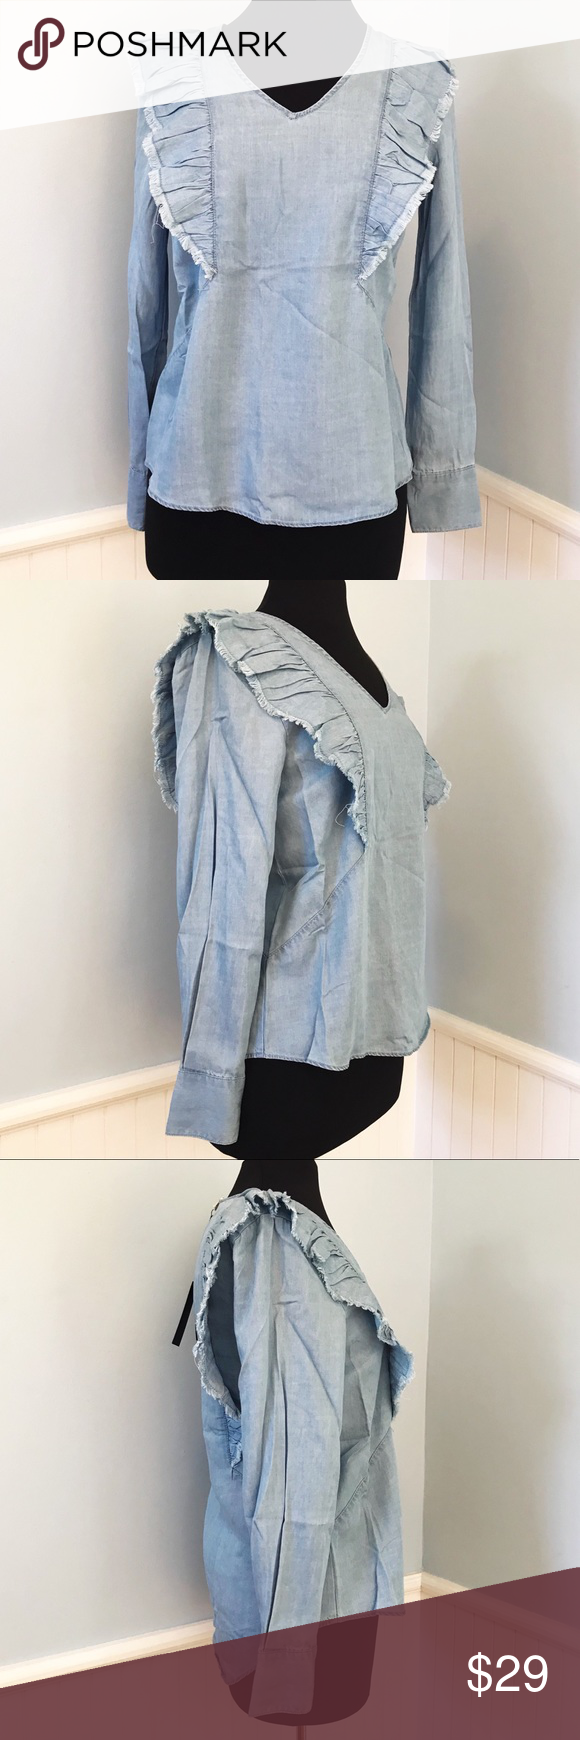 df2db68d618 NWT Jane and Delancey Ruffle Chambray Blouse XS NWT Jane and Delancey  Ruffle Chambray Blouse XS - Features  front and back ruffle